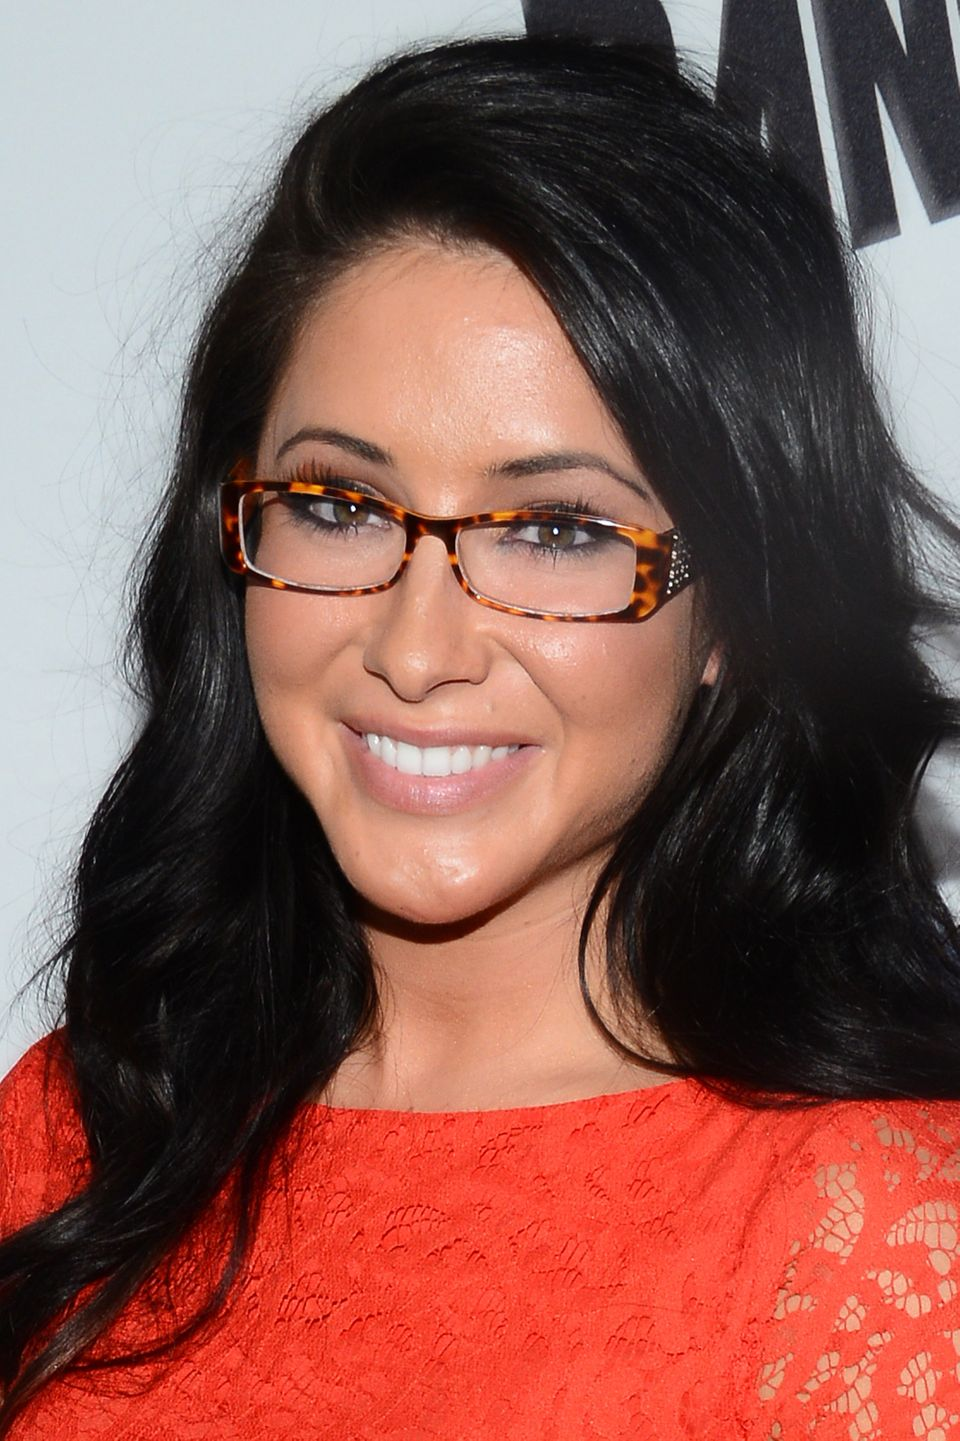 "<a href=""http://www.nydailynews.com/entertainment/tv-movies/bristol-palin-loves-honey-boo-boo-article-1.1172873"">Bristol Pali"